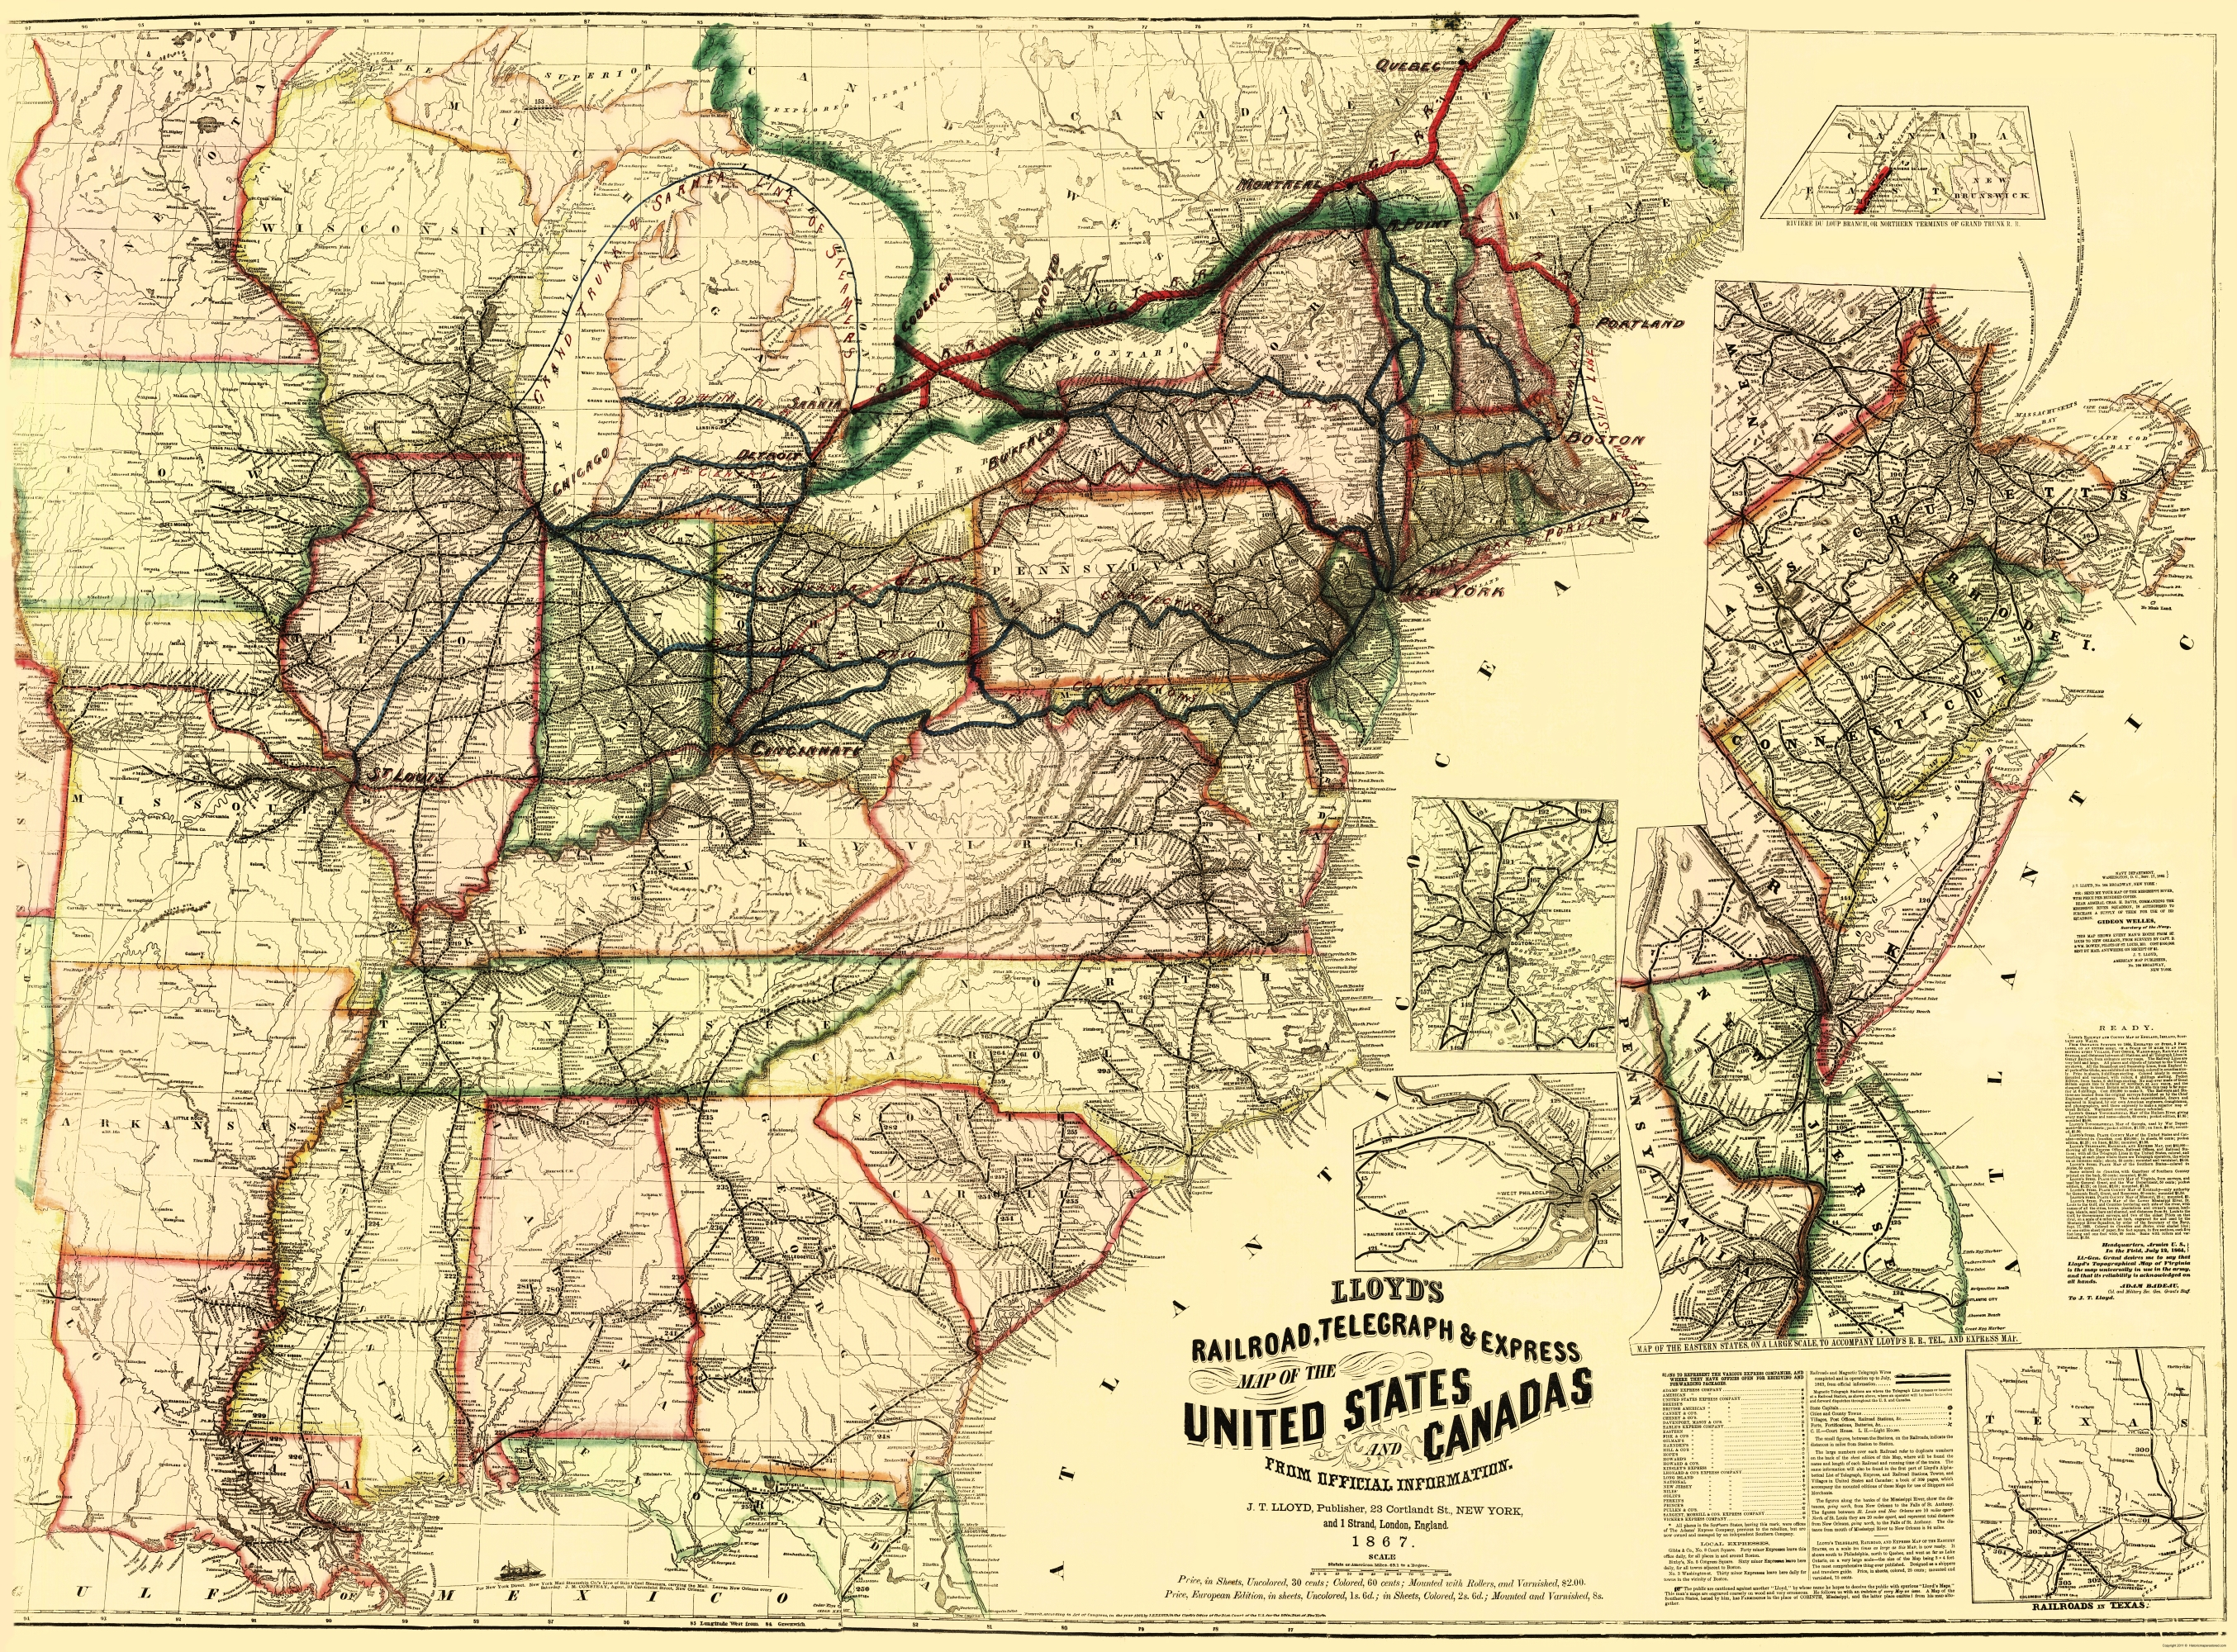 Old Map Railroads Telegraph Express In US - Old us railroad map